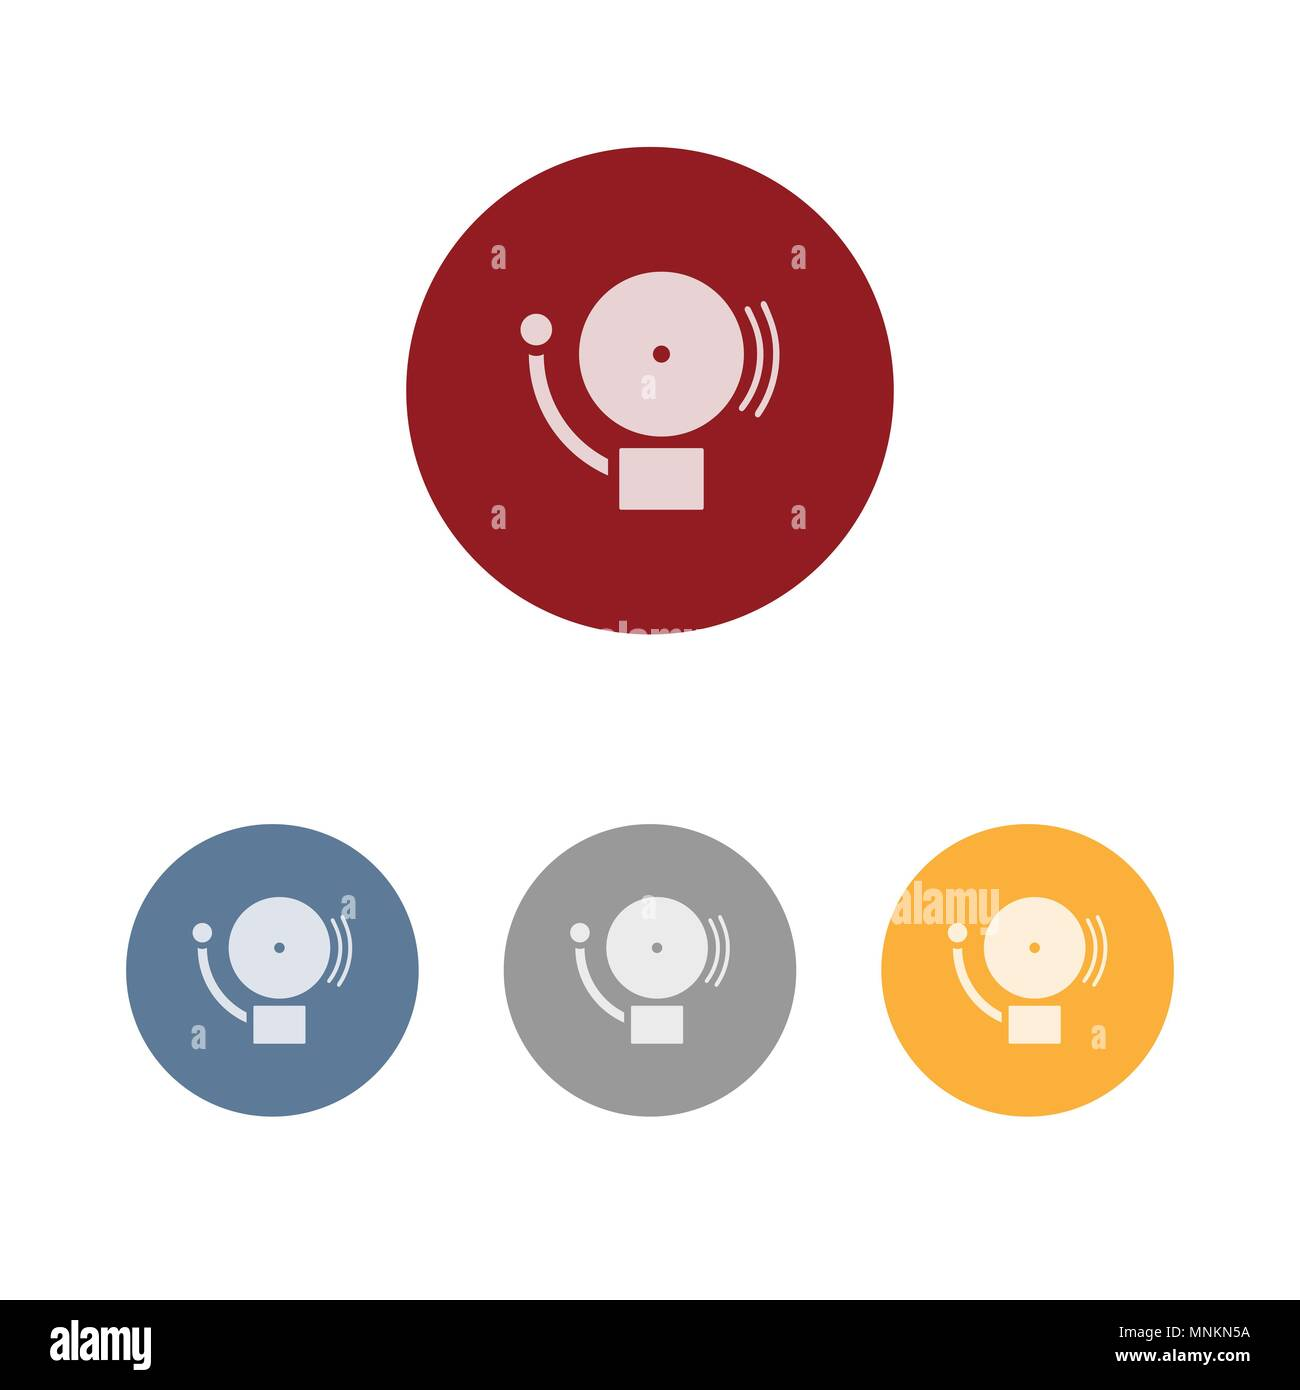 Alarm icon on colored circle - Stock Image